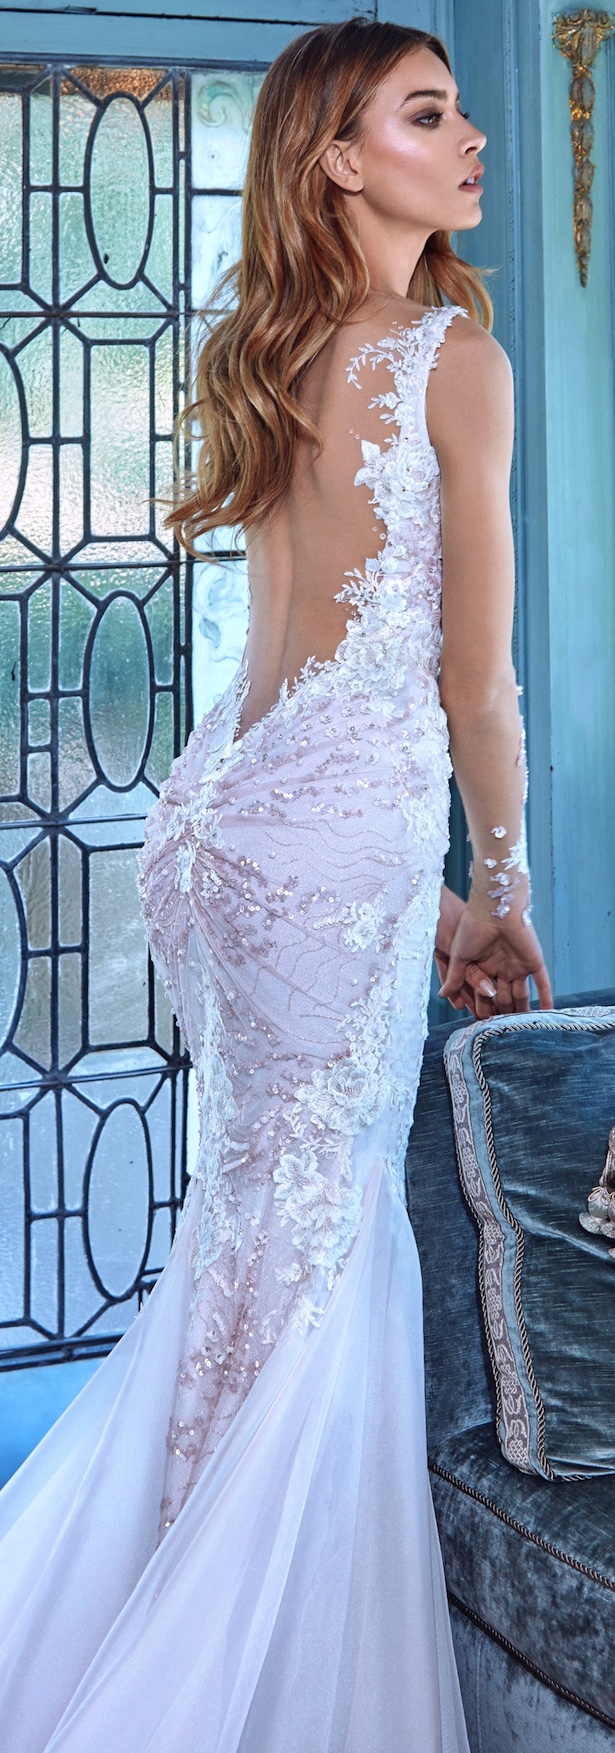 Galia Lahav Spring 2017 Collection - Le Secret Royal